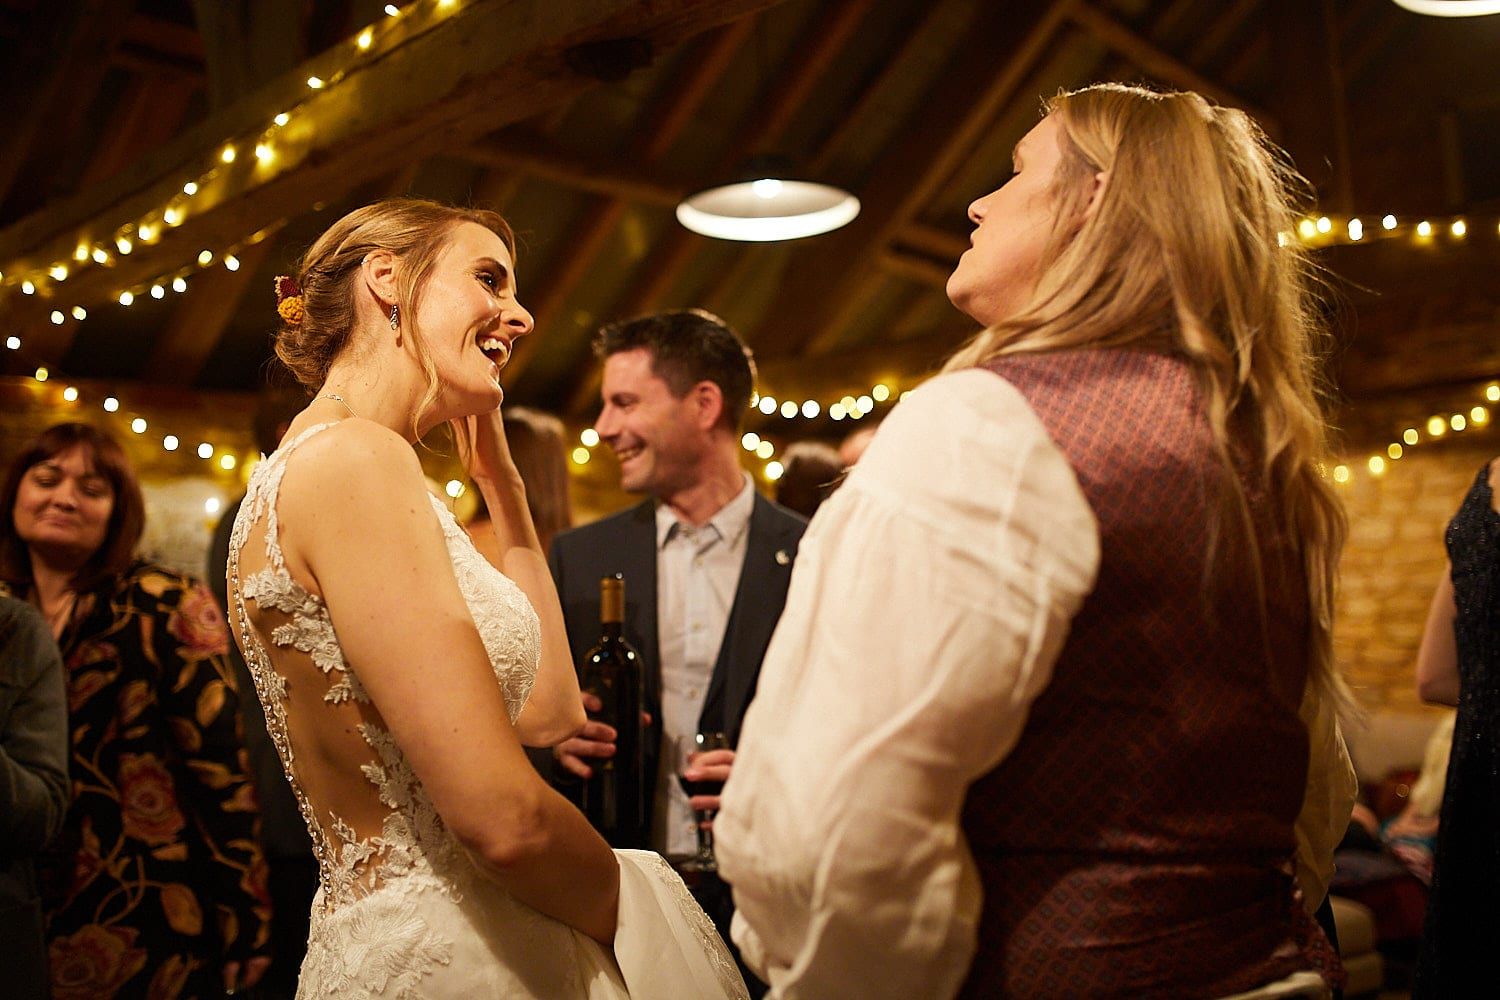 A newlywed couple laugh as they chat with each other